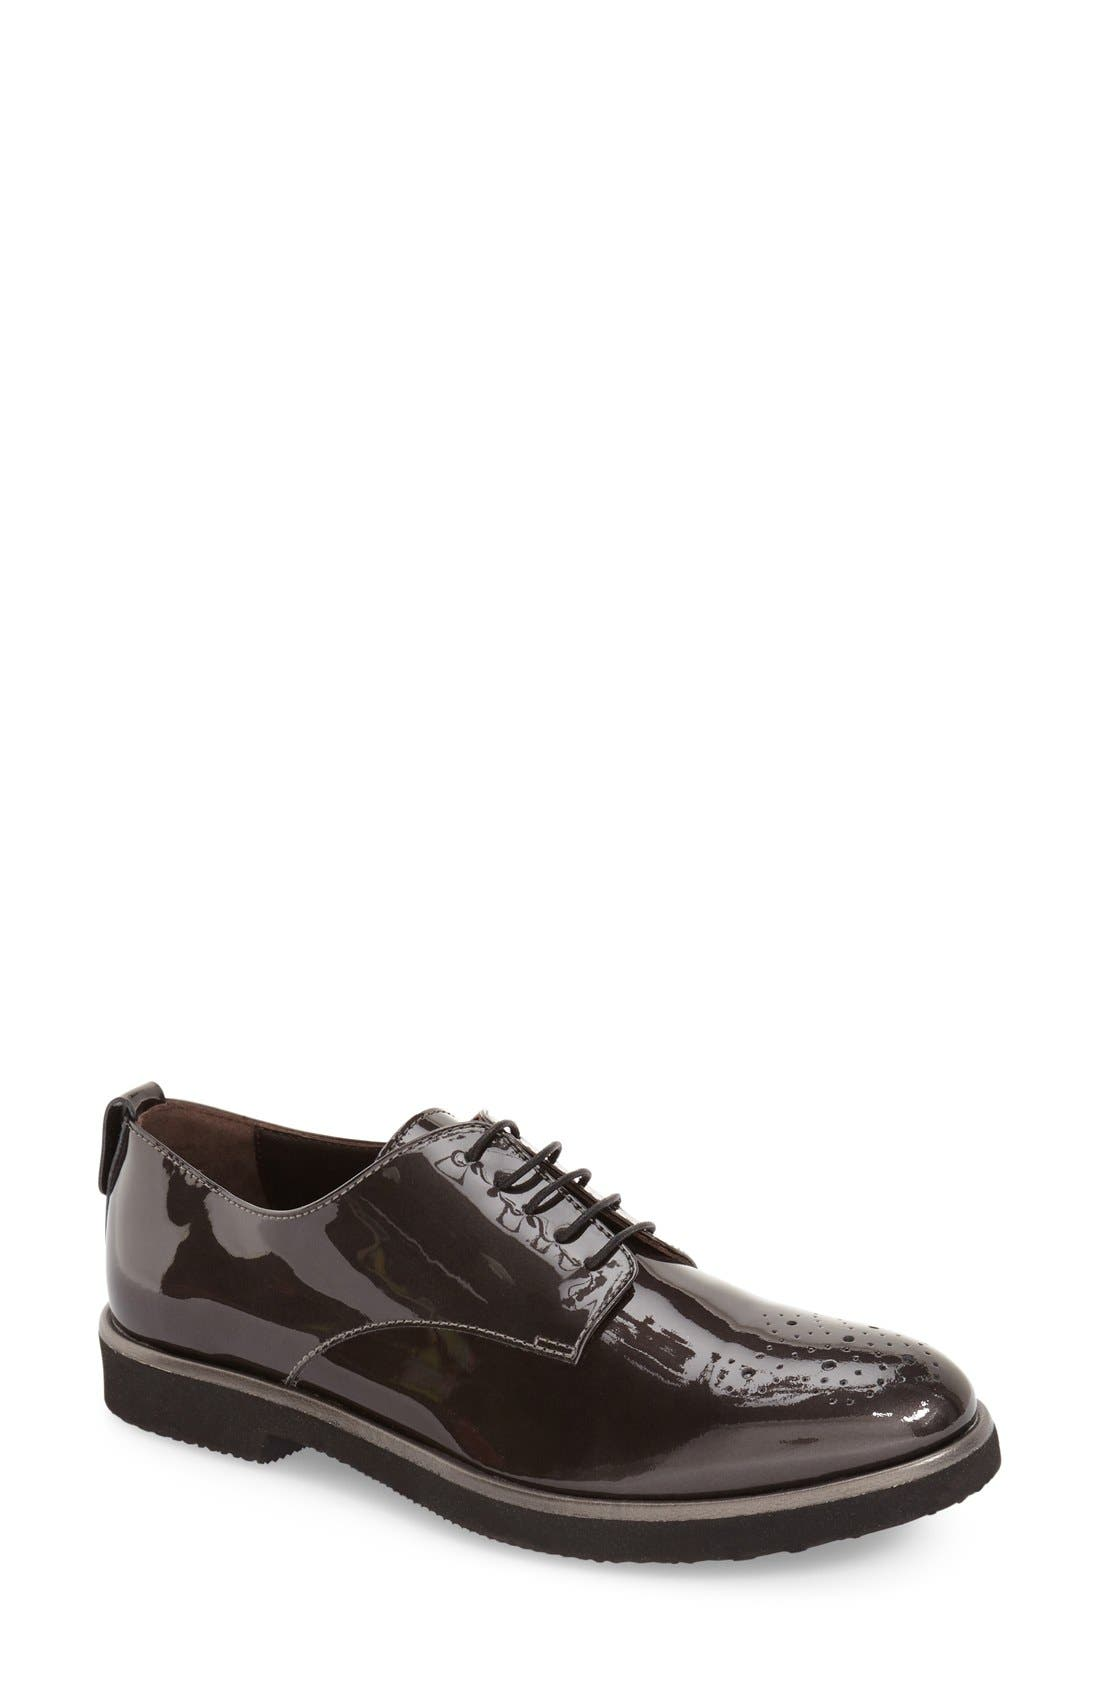 Main Image - AGL 'Parker' Oxford (Women)